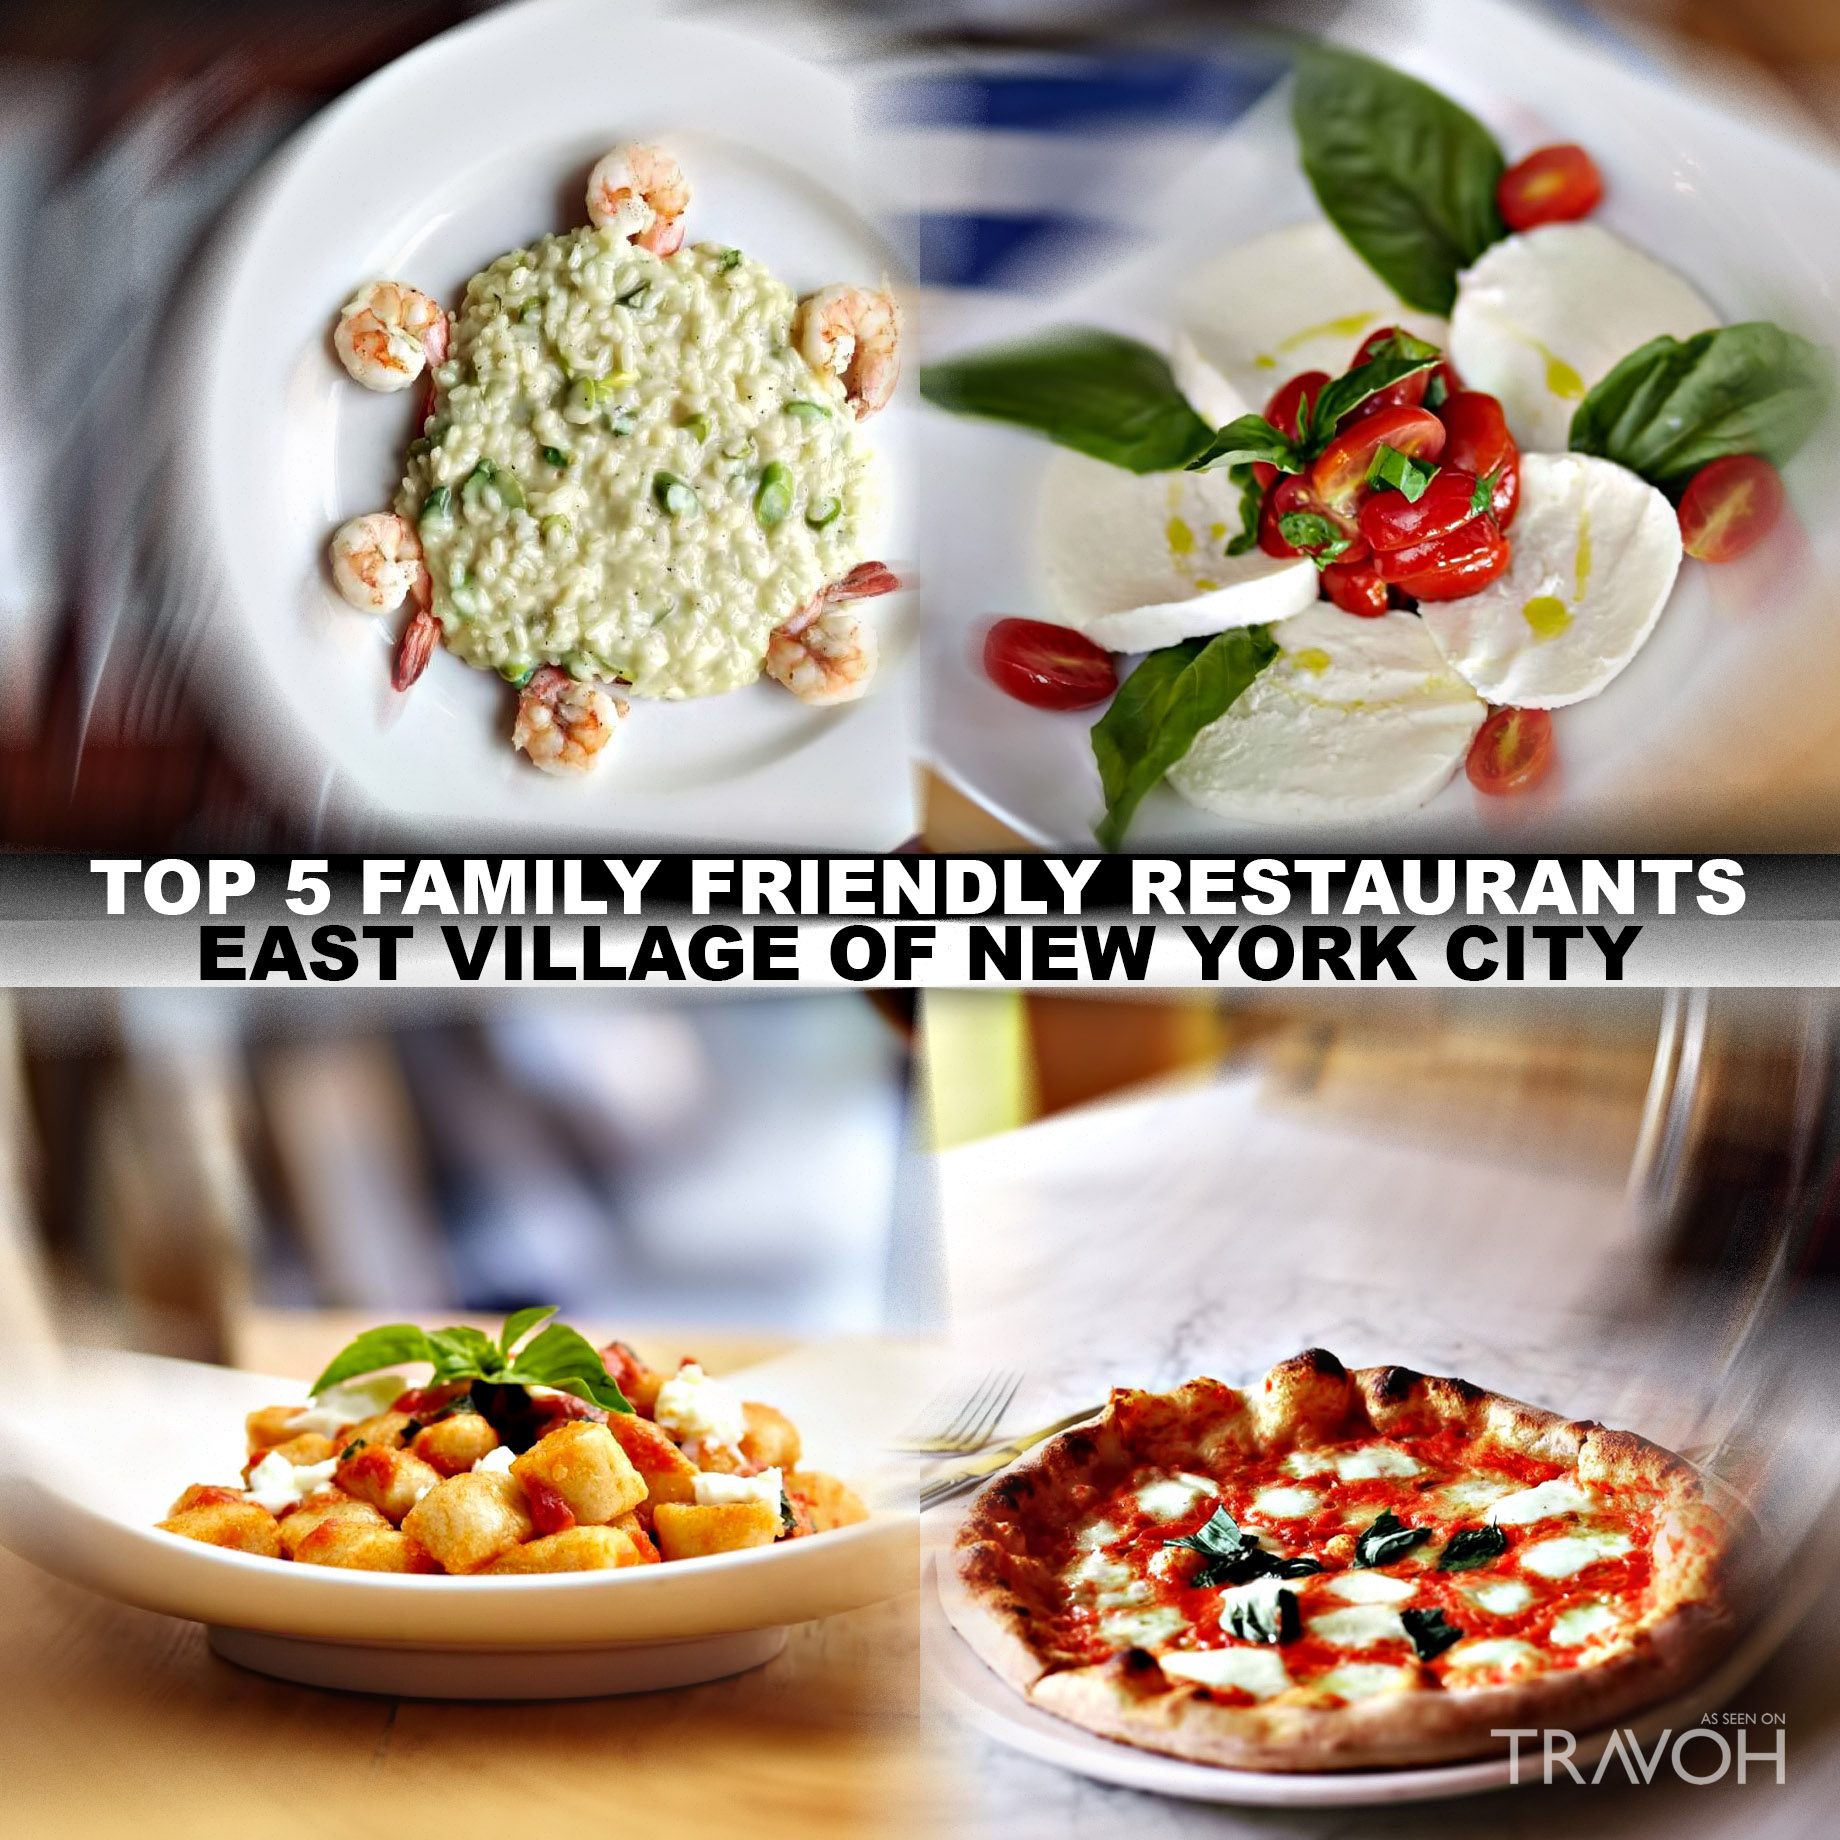 Top 5 Family Friendly Restaurants in the East Village of New York City